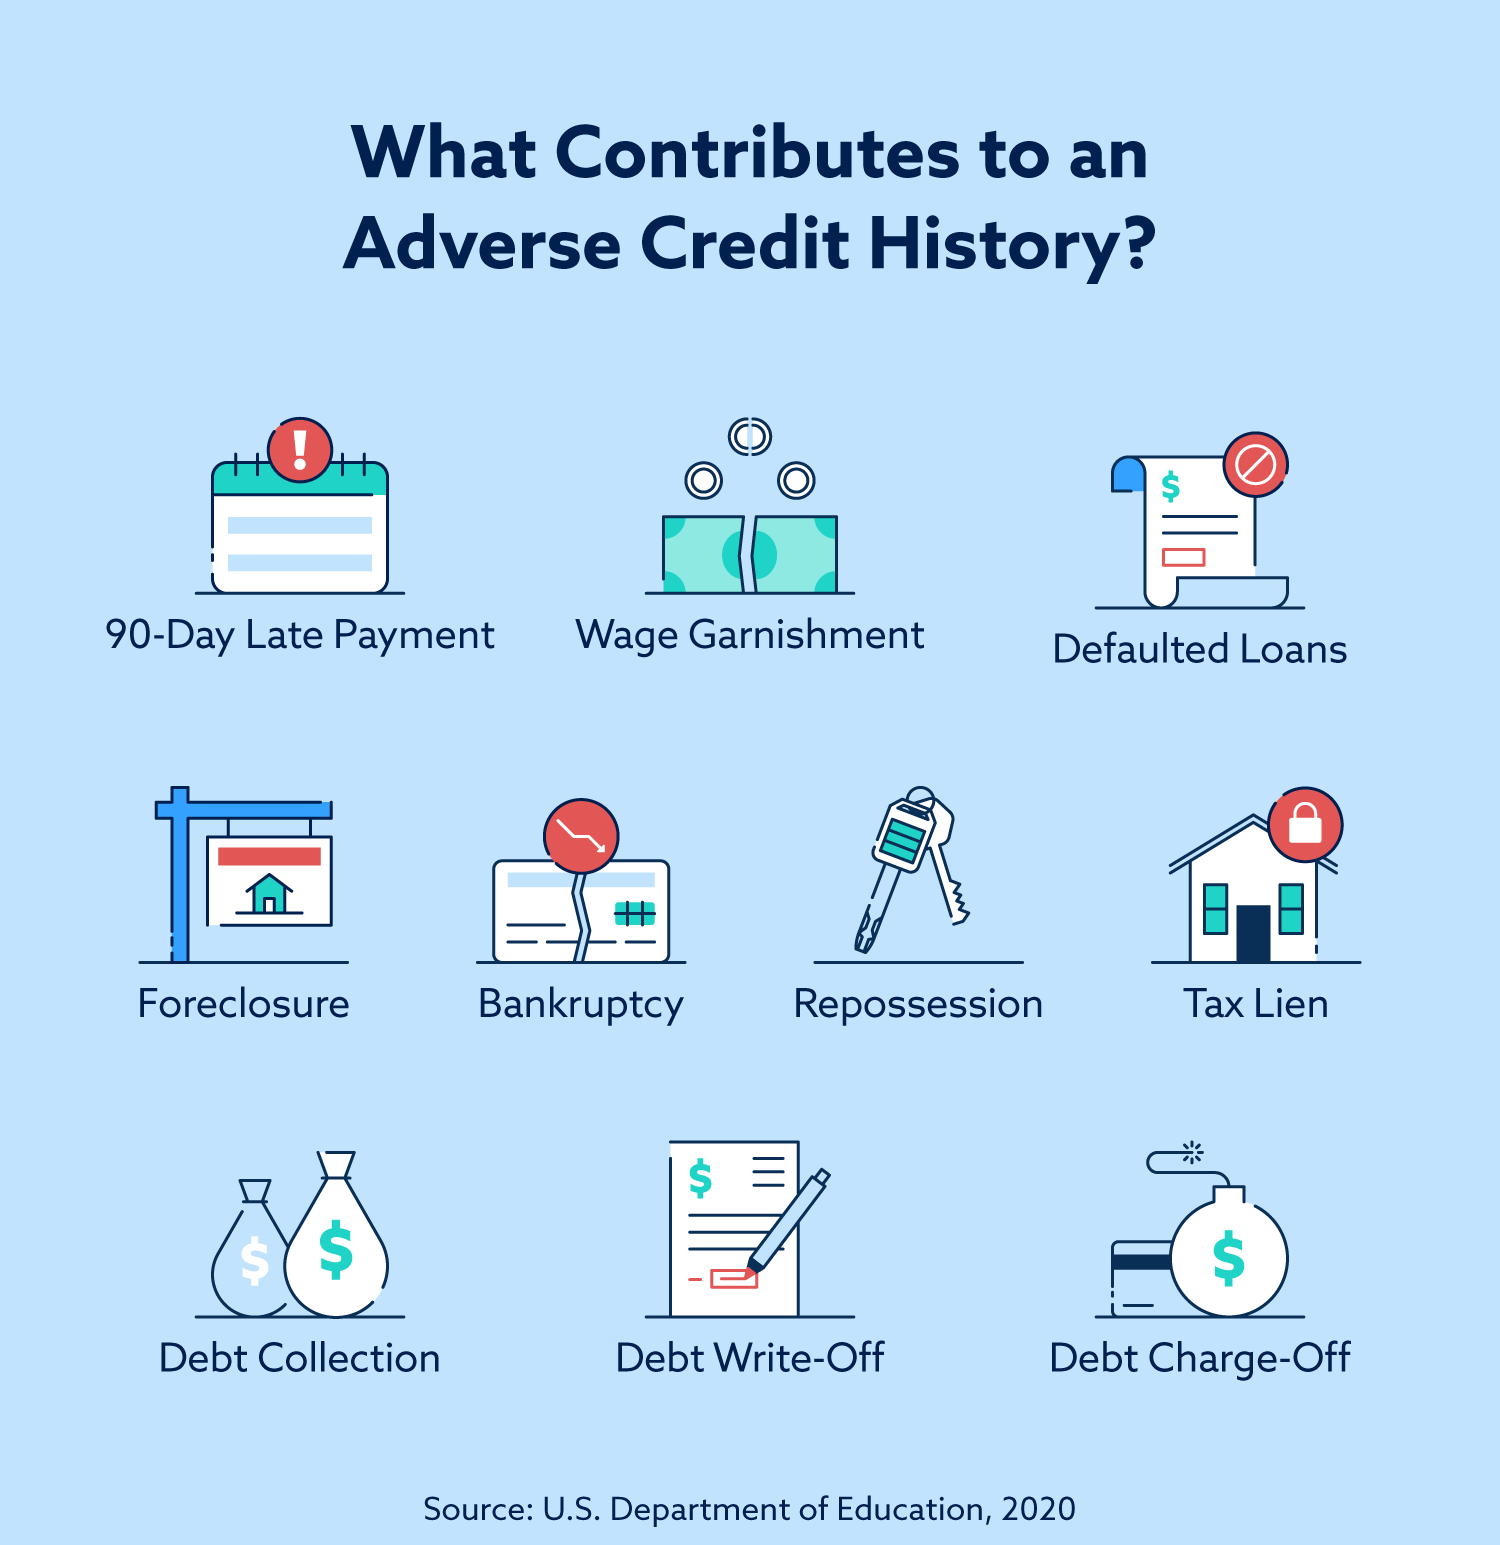 What contributes to an adverse credit history? 90-day late payments, wage garnishment, defaulted loans, foreclosure, bankruptcy, repossession, tax lien, debt collection, debt write-off, and debt charge-off are just a few things.